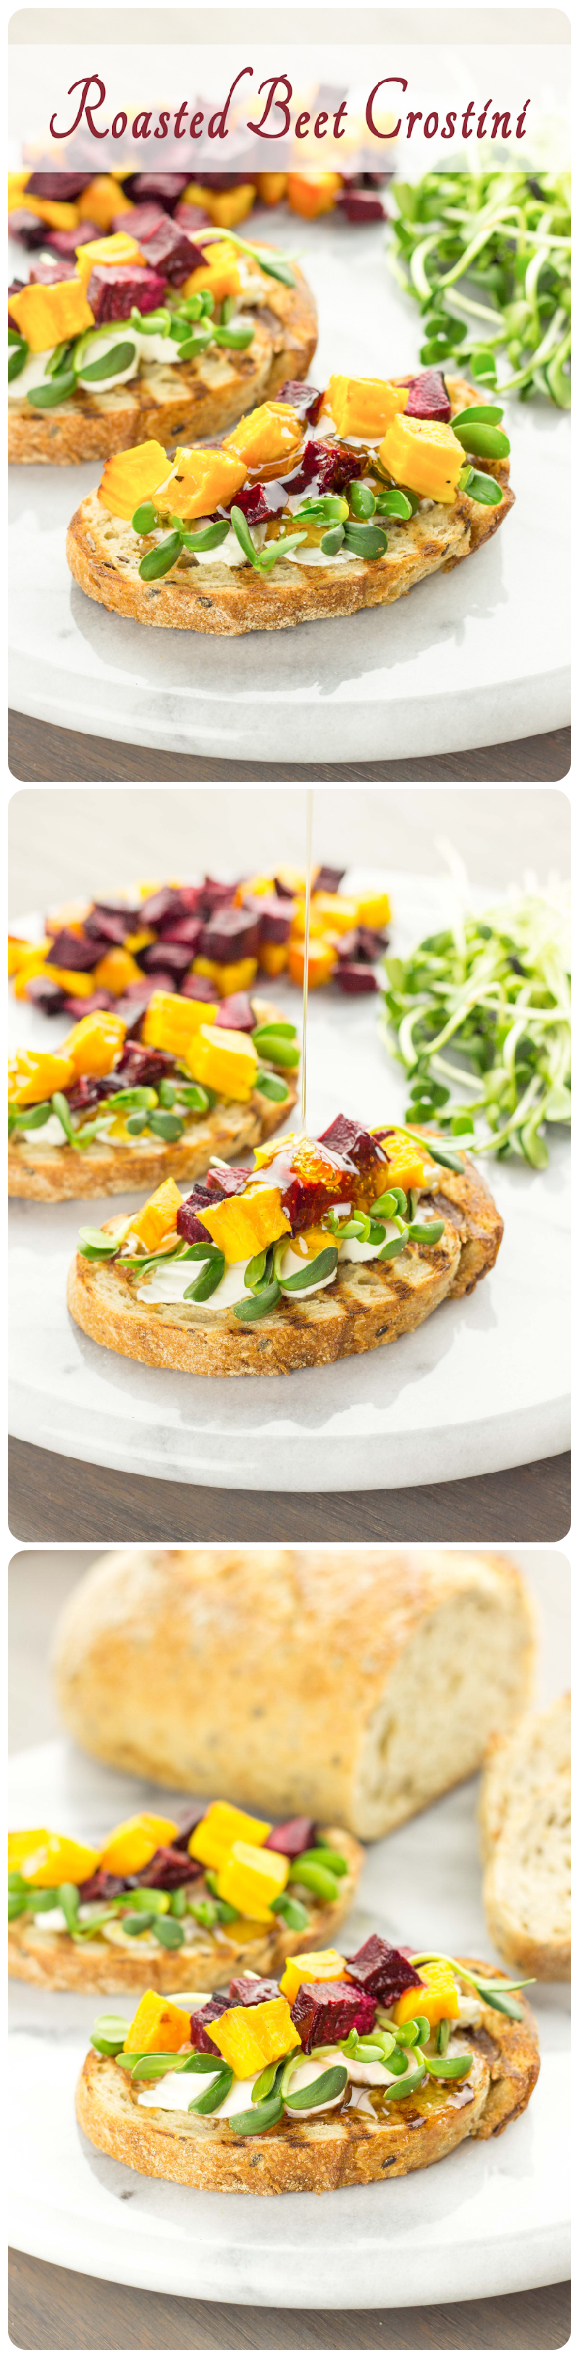 http://table.io/roasted-beet-crostini/